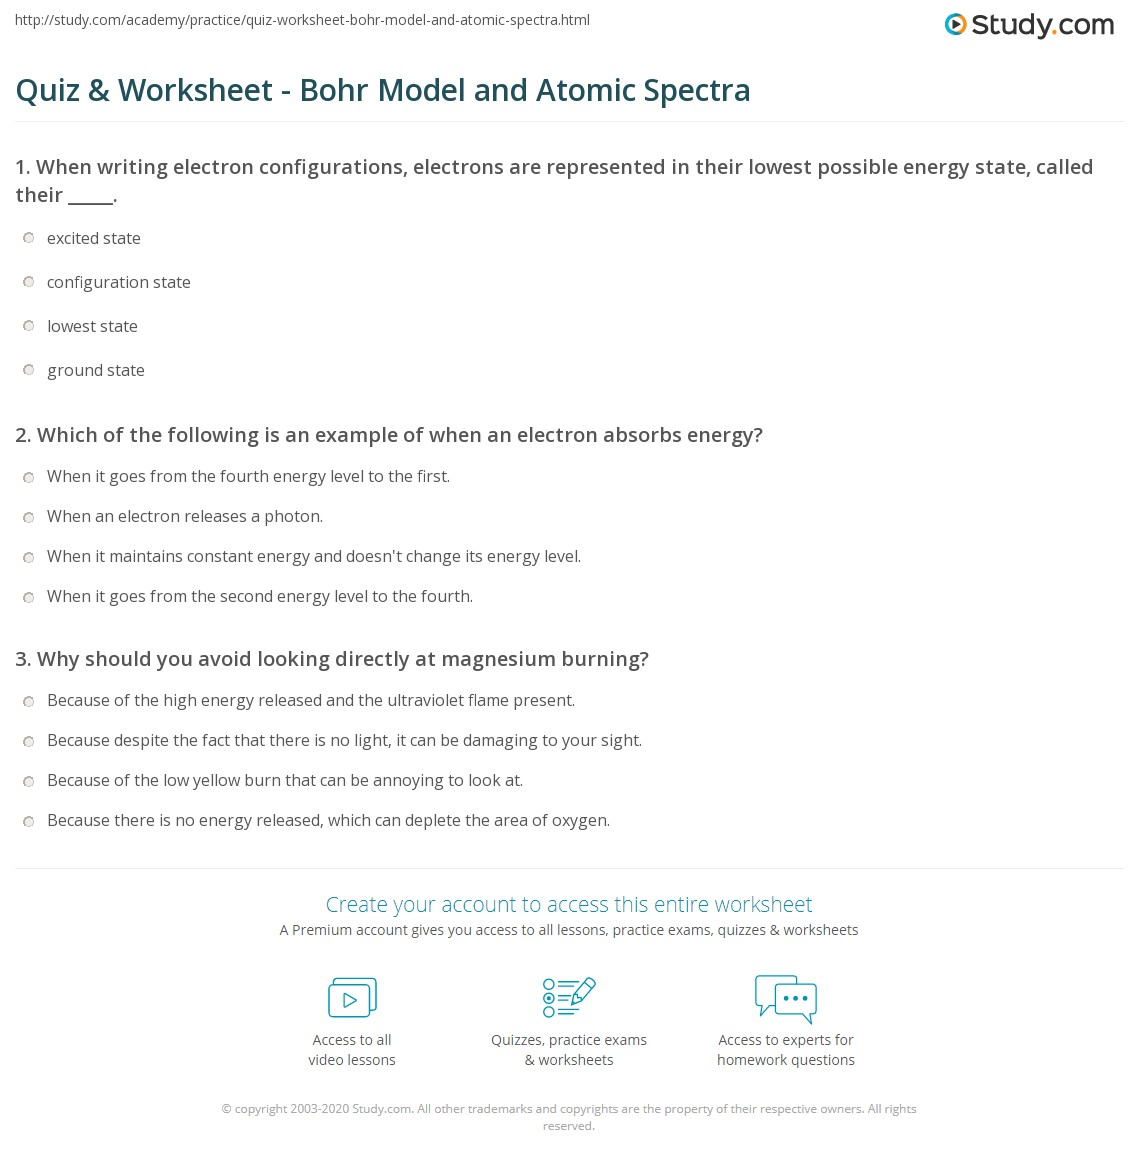 worksheet Models Of The Atom Worksheet Answers quiz worksheet bohr model and atomic spectra study com print the worksheet